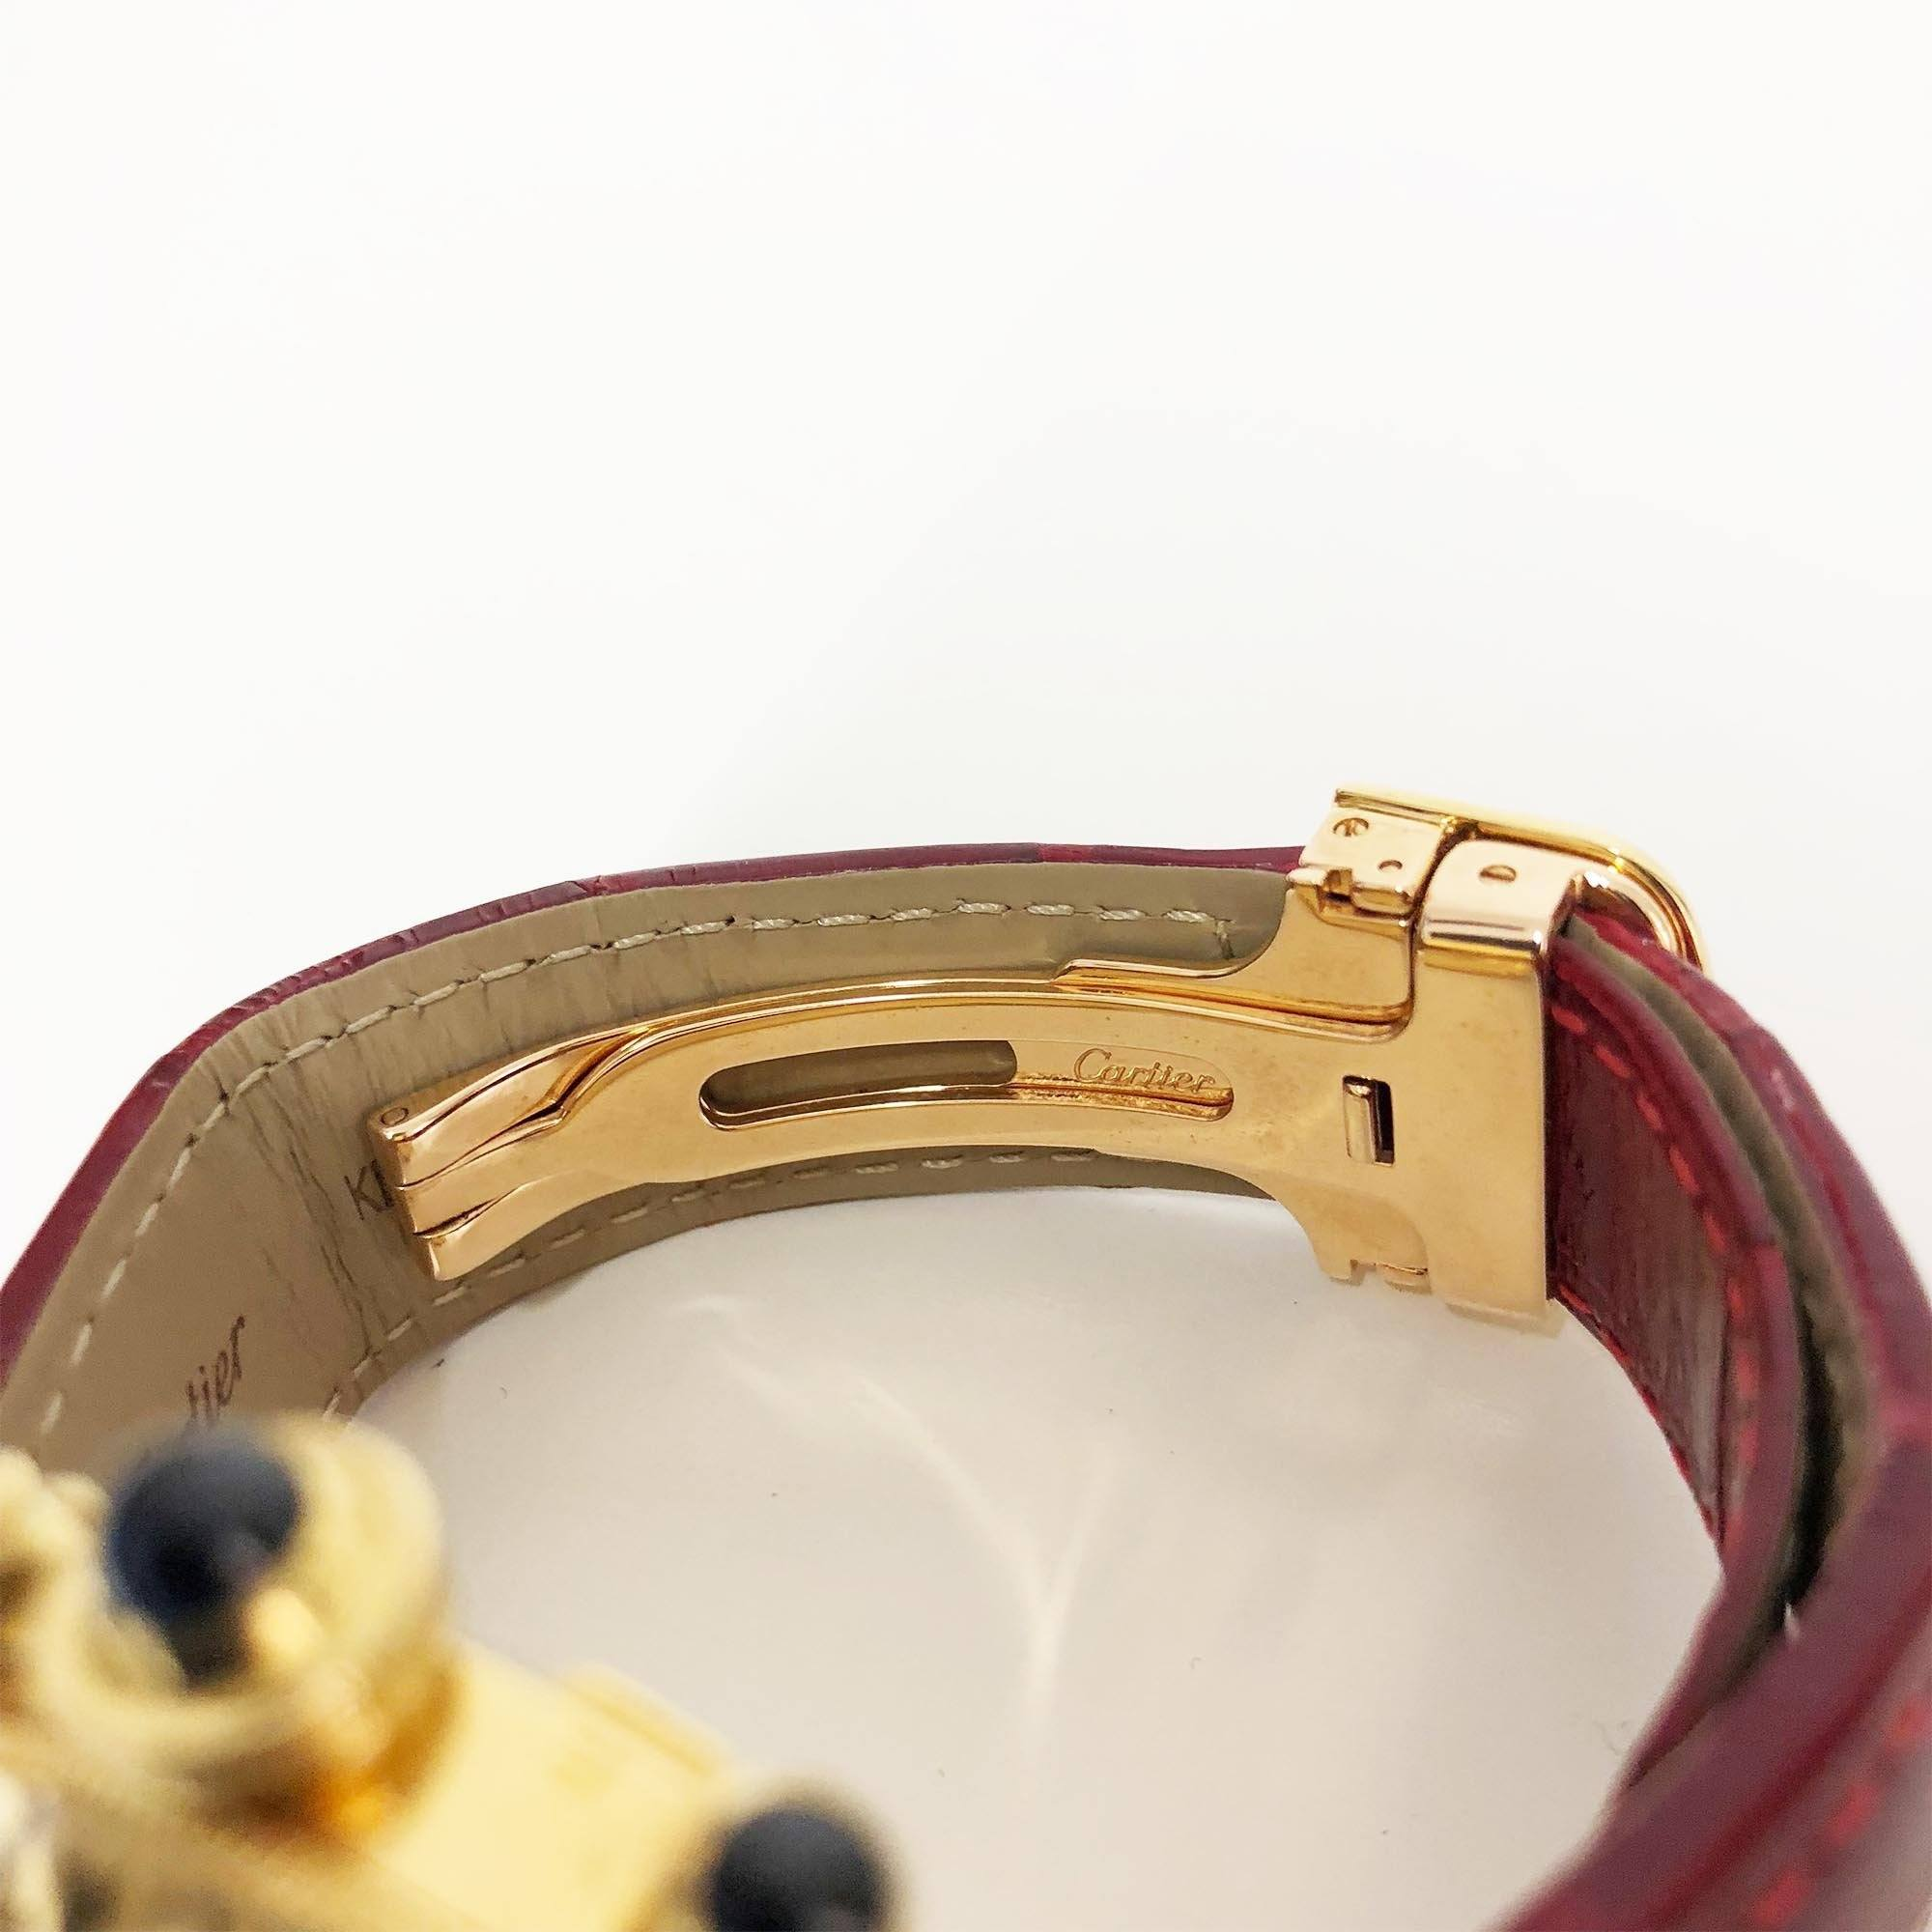 Cartier Pasha 35 mm Yellow Gold Watch